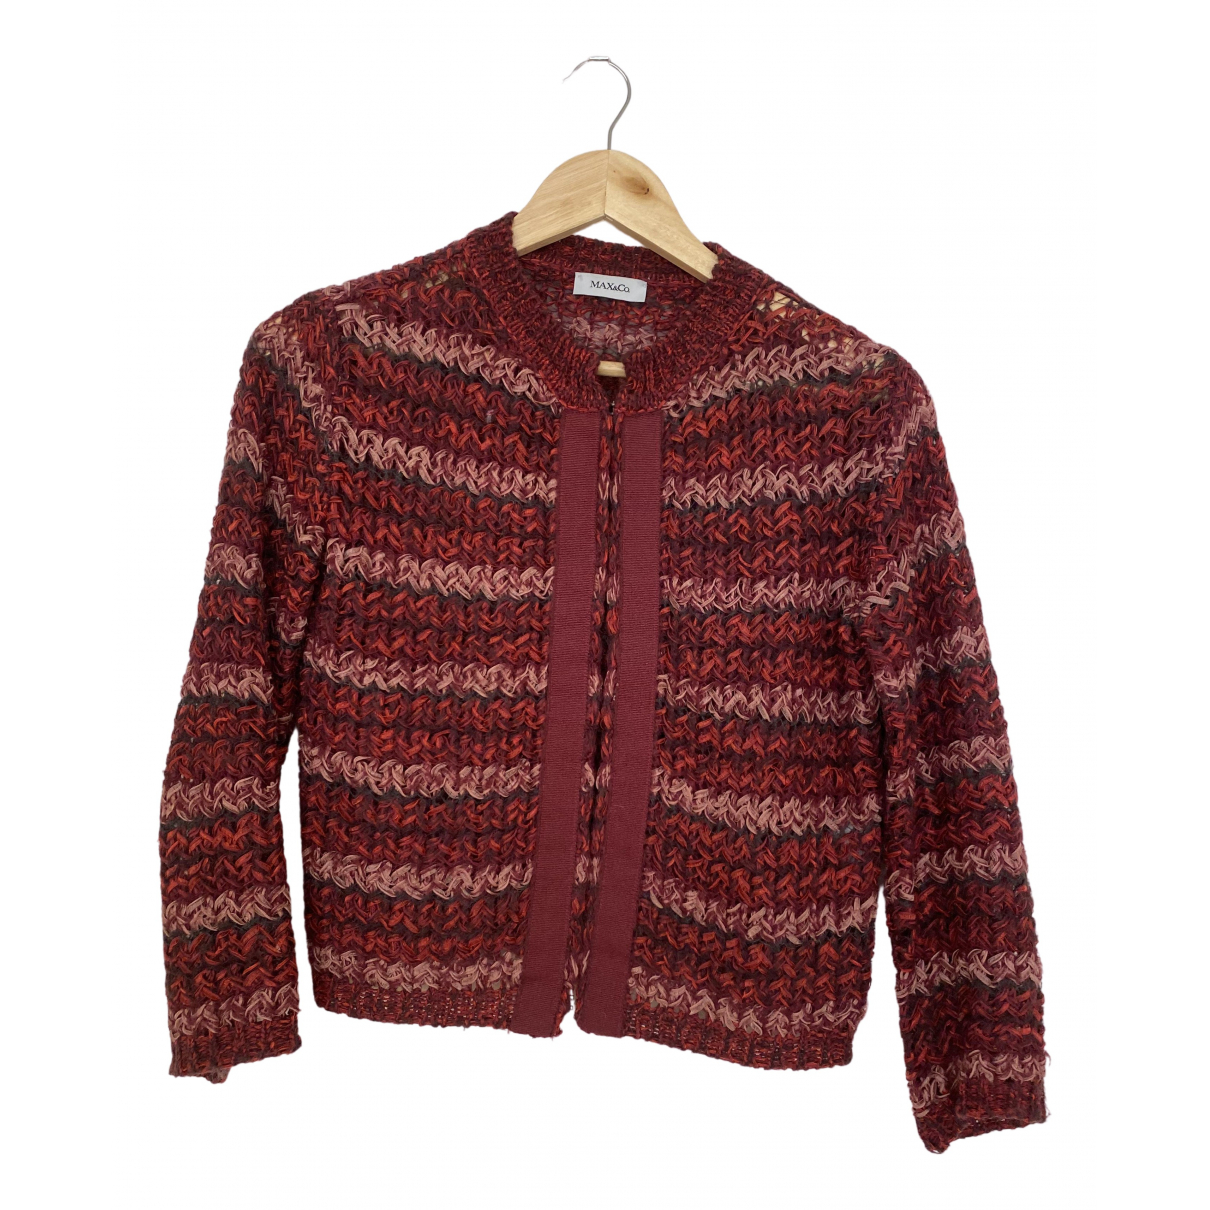 Max & Co \N Pullover in  Bordeauxrot Baumwolle